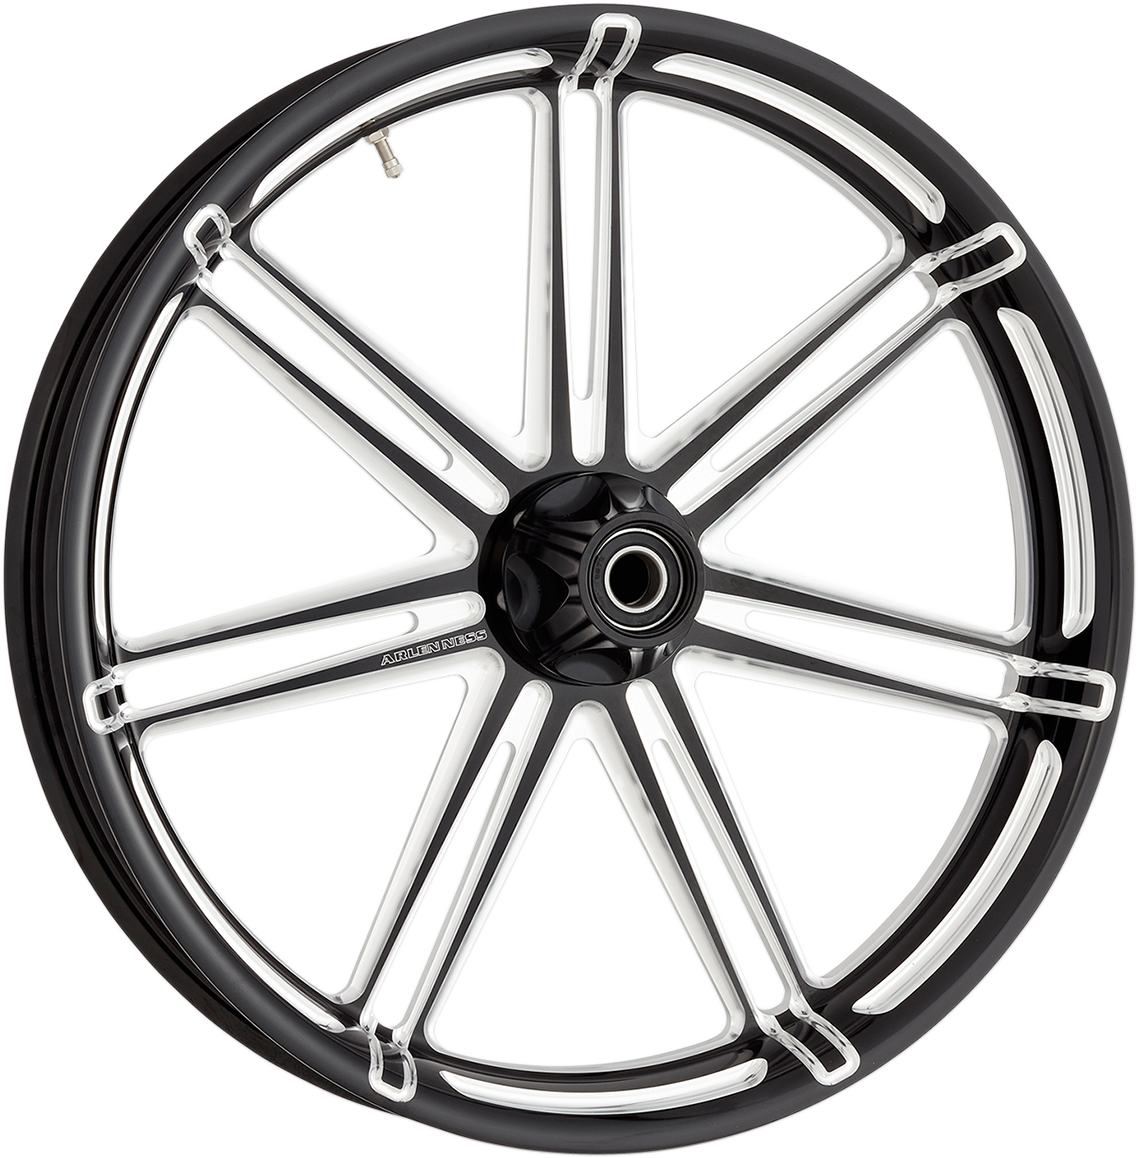 "Arlen Ness 7 Valve Black 21"" x 3.5"" Front Wheel for 08-18 Harley Touring FLHX"